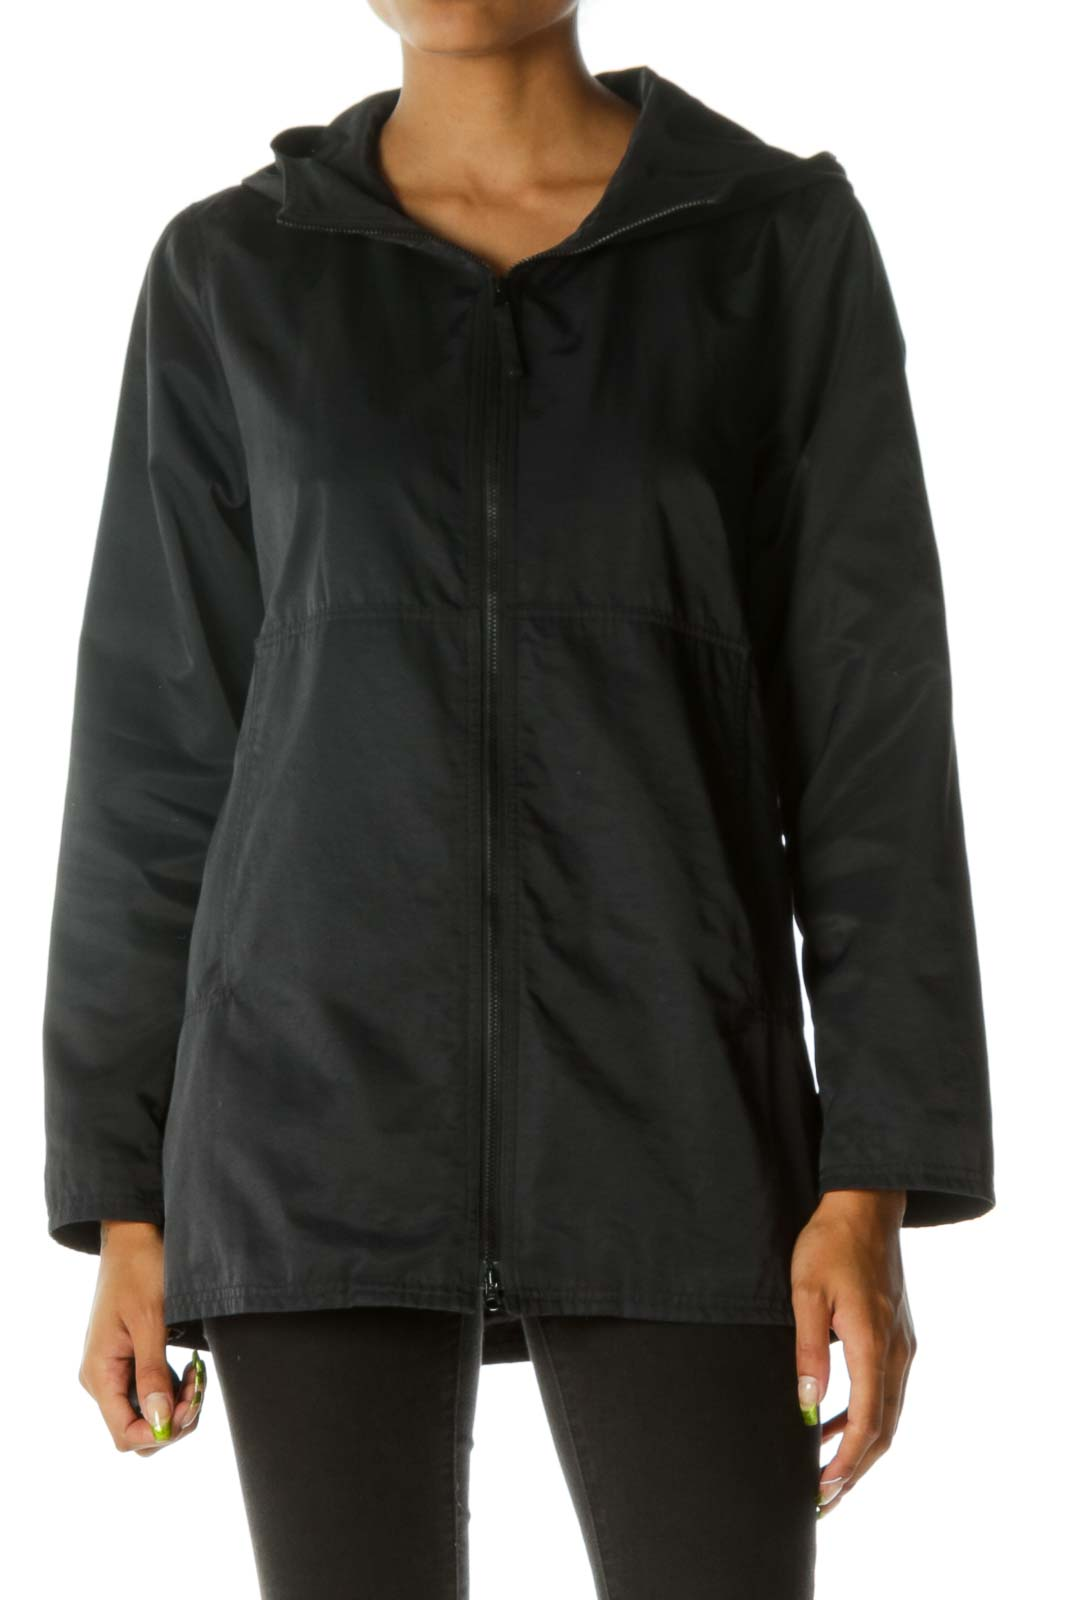 Black Hooded Zipped Sport Jacket